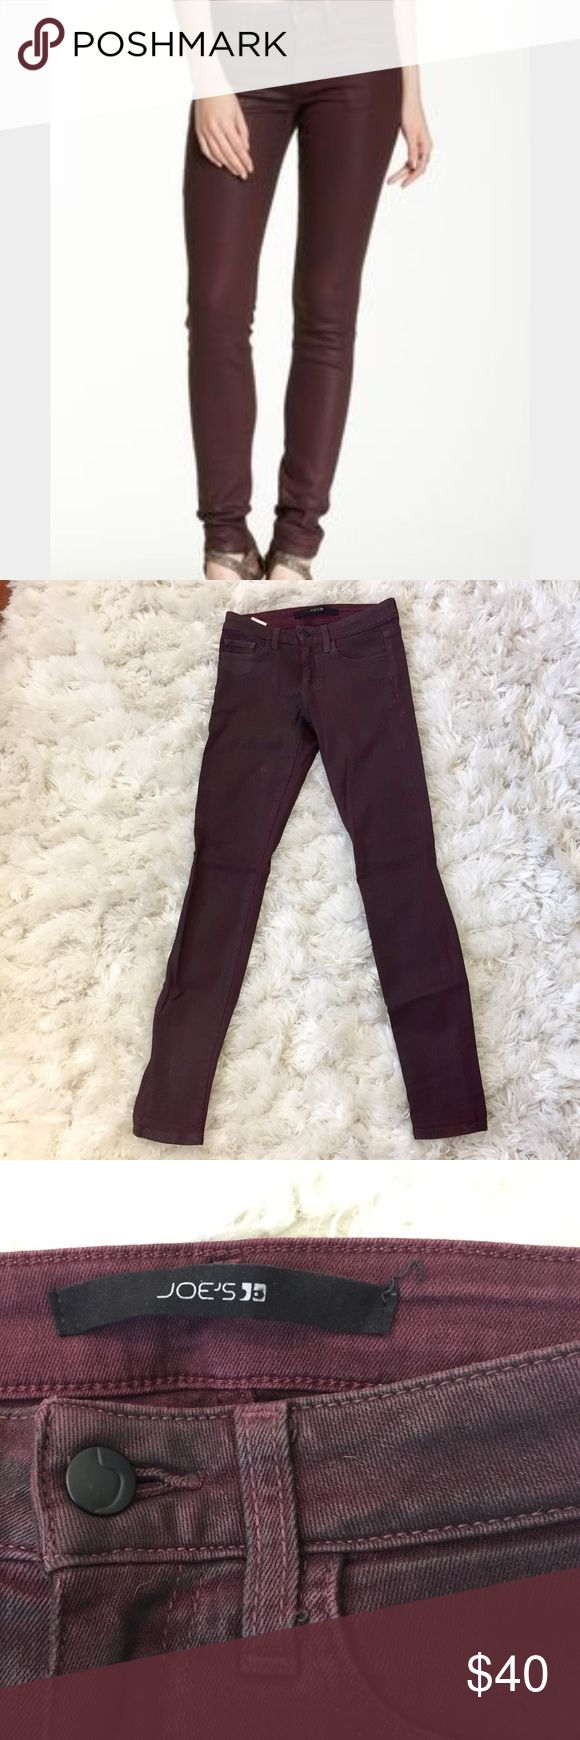 Joe's coated Skinny Jeans in Bordeaux Plum or wine colored wax coated skinny jeans. Only been worn once! Rock n roll baby Joe's Jeans Jeans Skinny